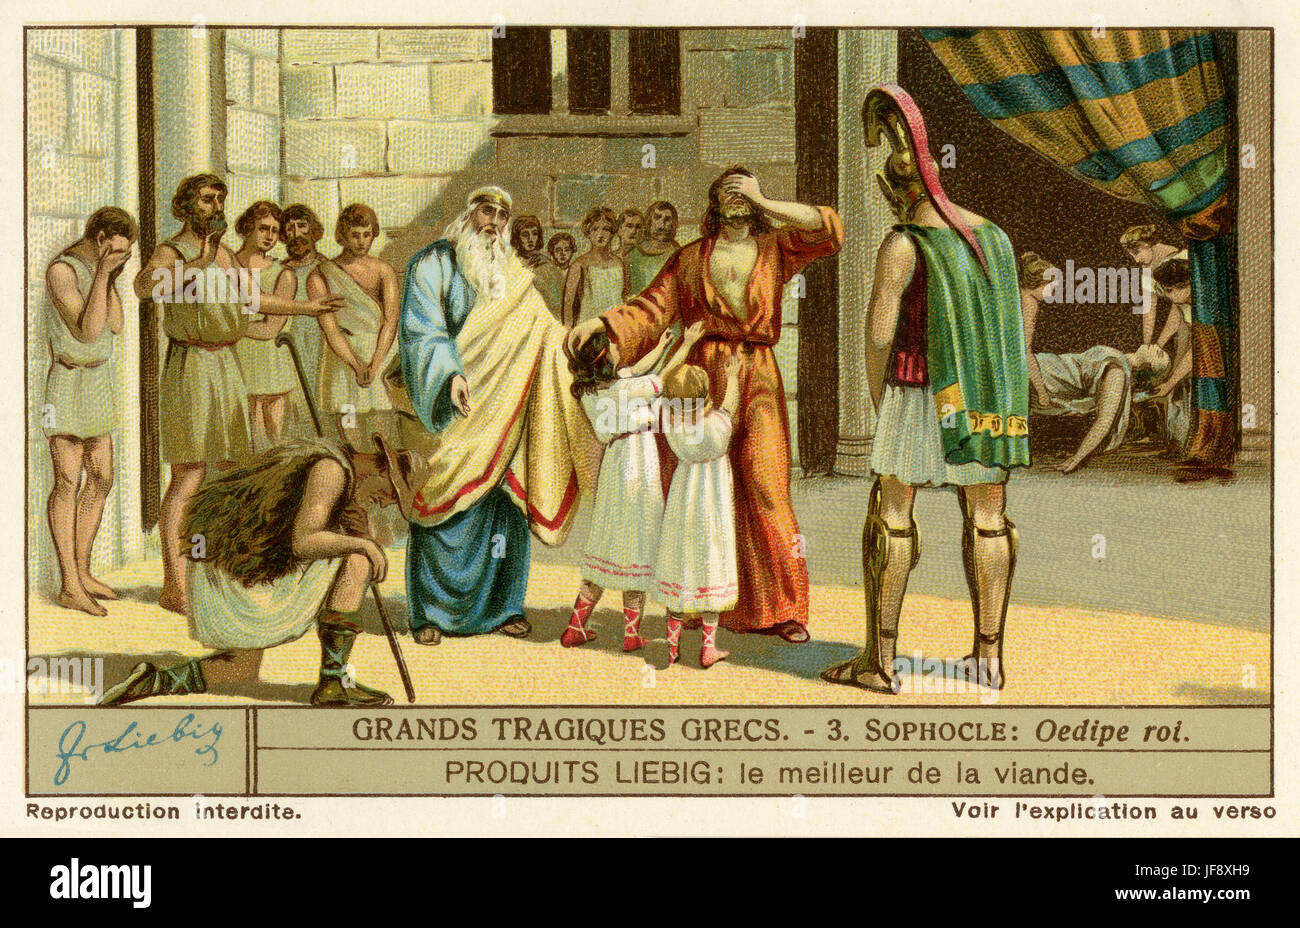 a brief overview of oedipus the king a play by sophocles Oedipus the king by sophocles friends, countrymen, i learn king oedipus 'twas but a brief while were thou wast proclaimed.